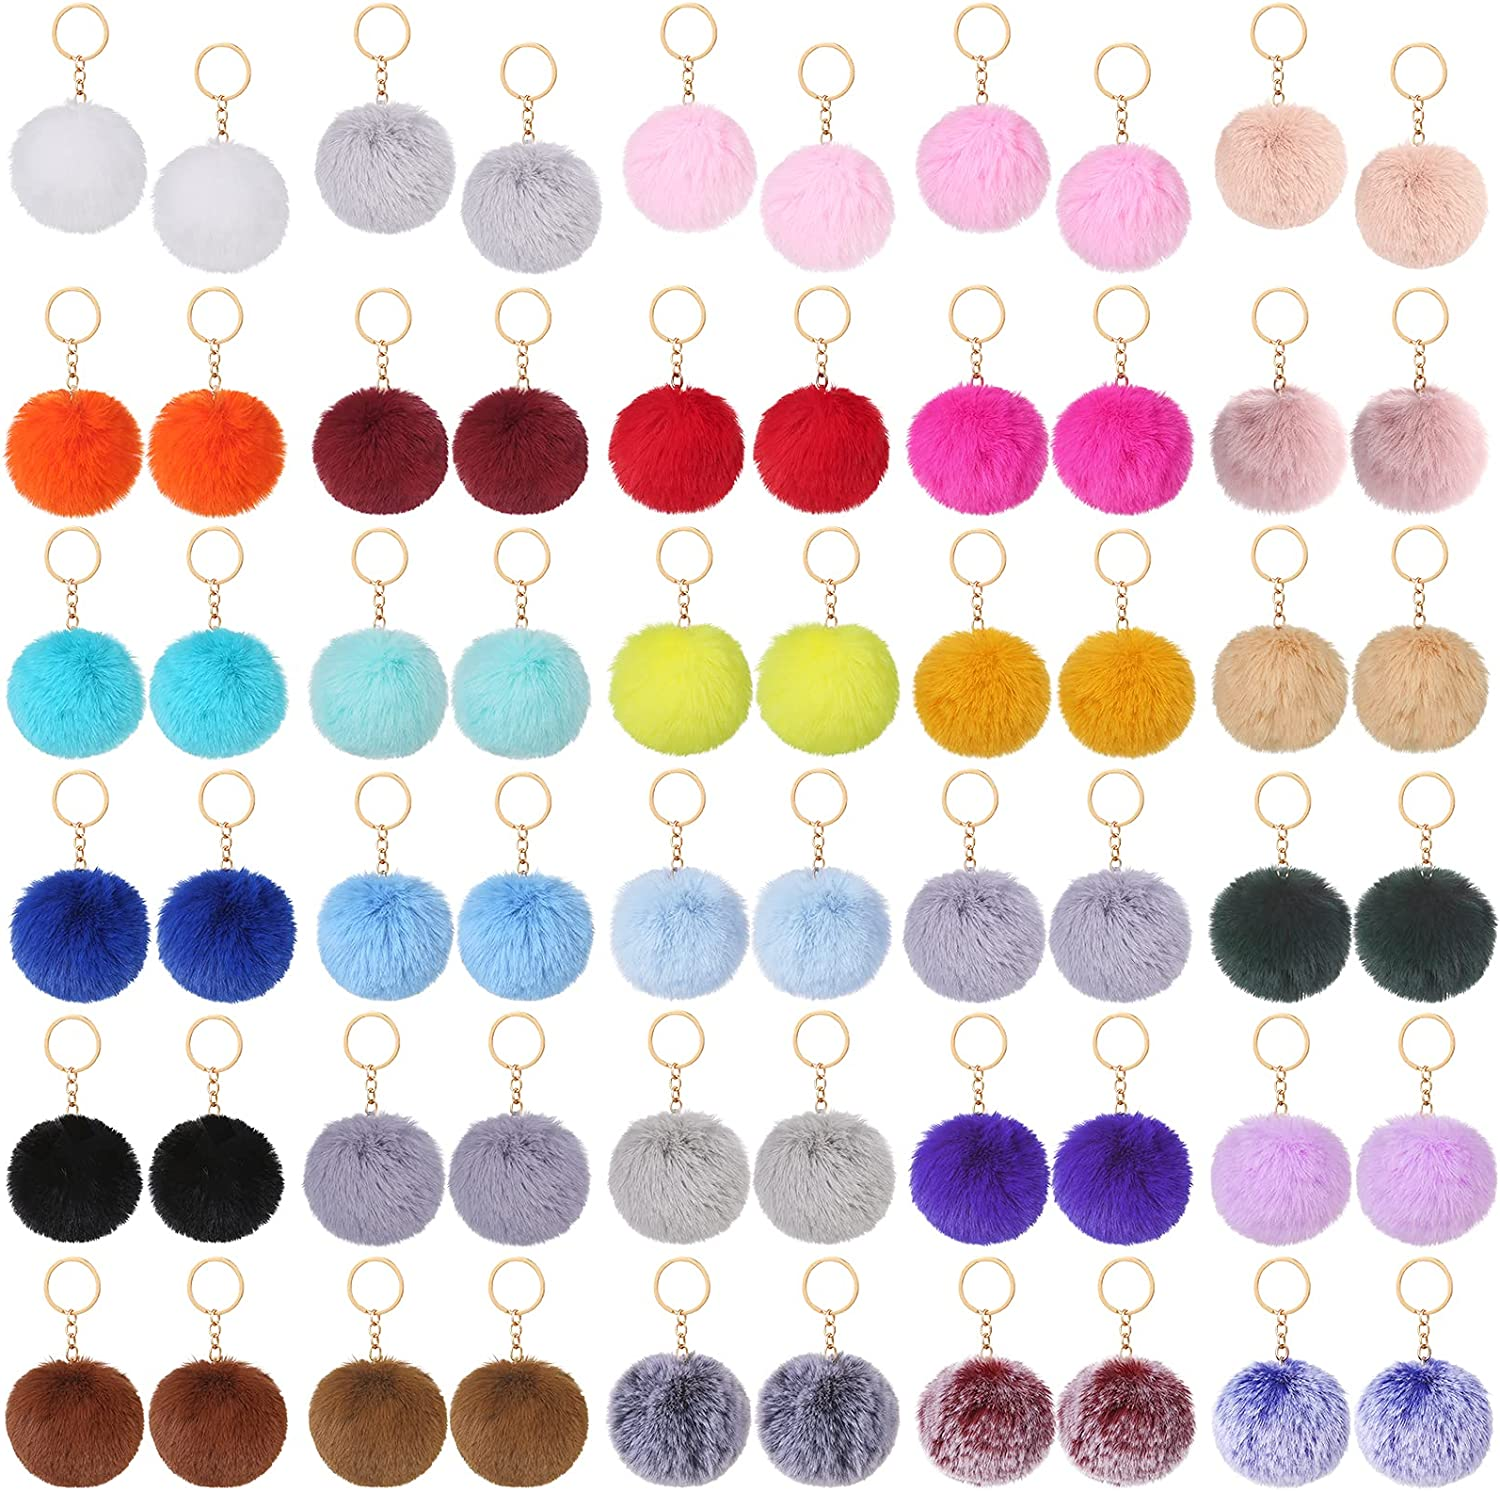 Auihiay 60 Pieces Pompoms Keychains Fluffy Puff Ball Keyrings for Girls Women Pendant Accessories (30 Colors)